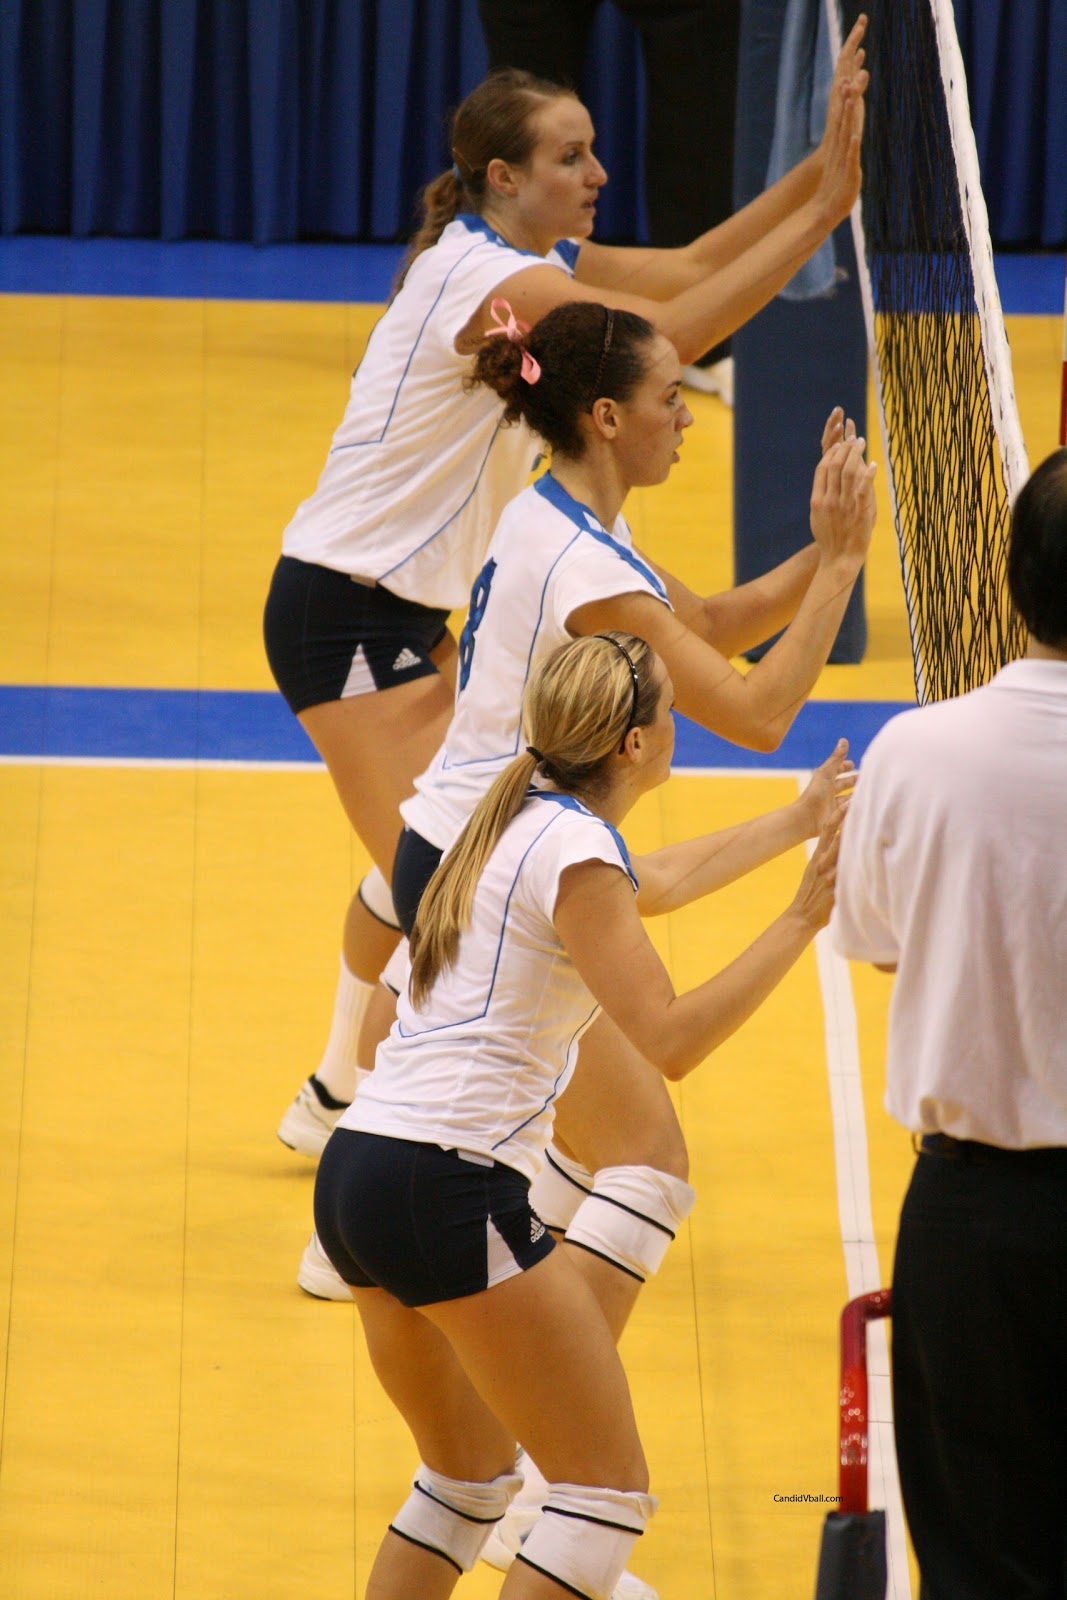 Volleyball Girls Pictures College Volleyball-1266